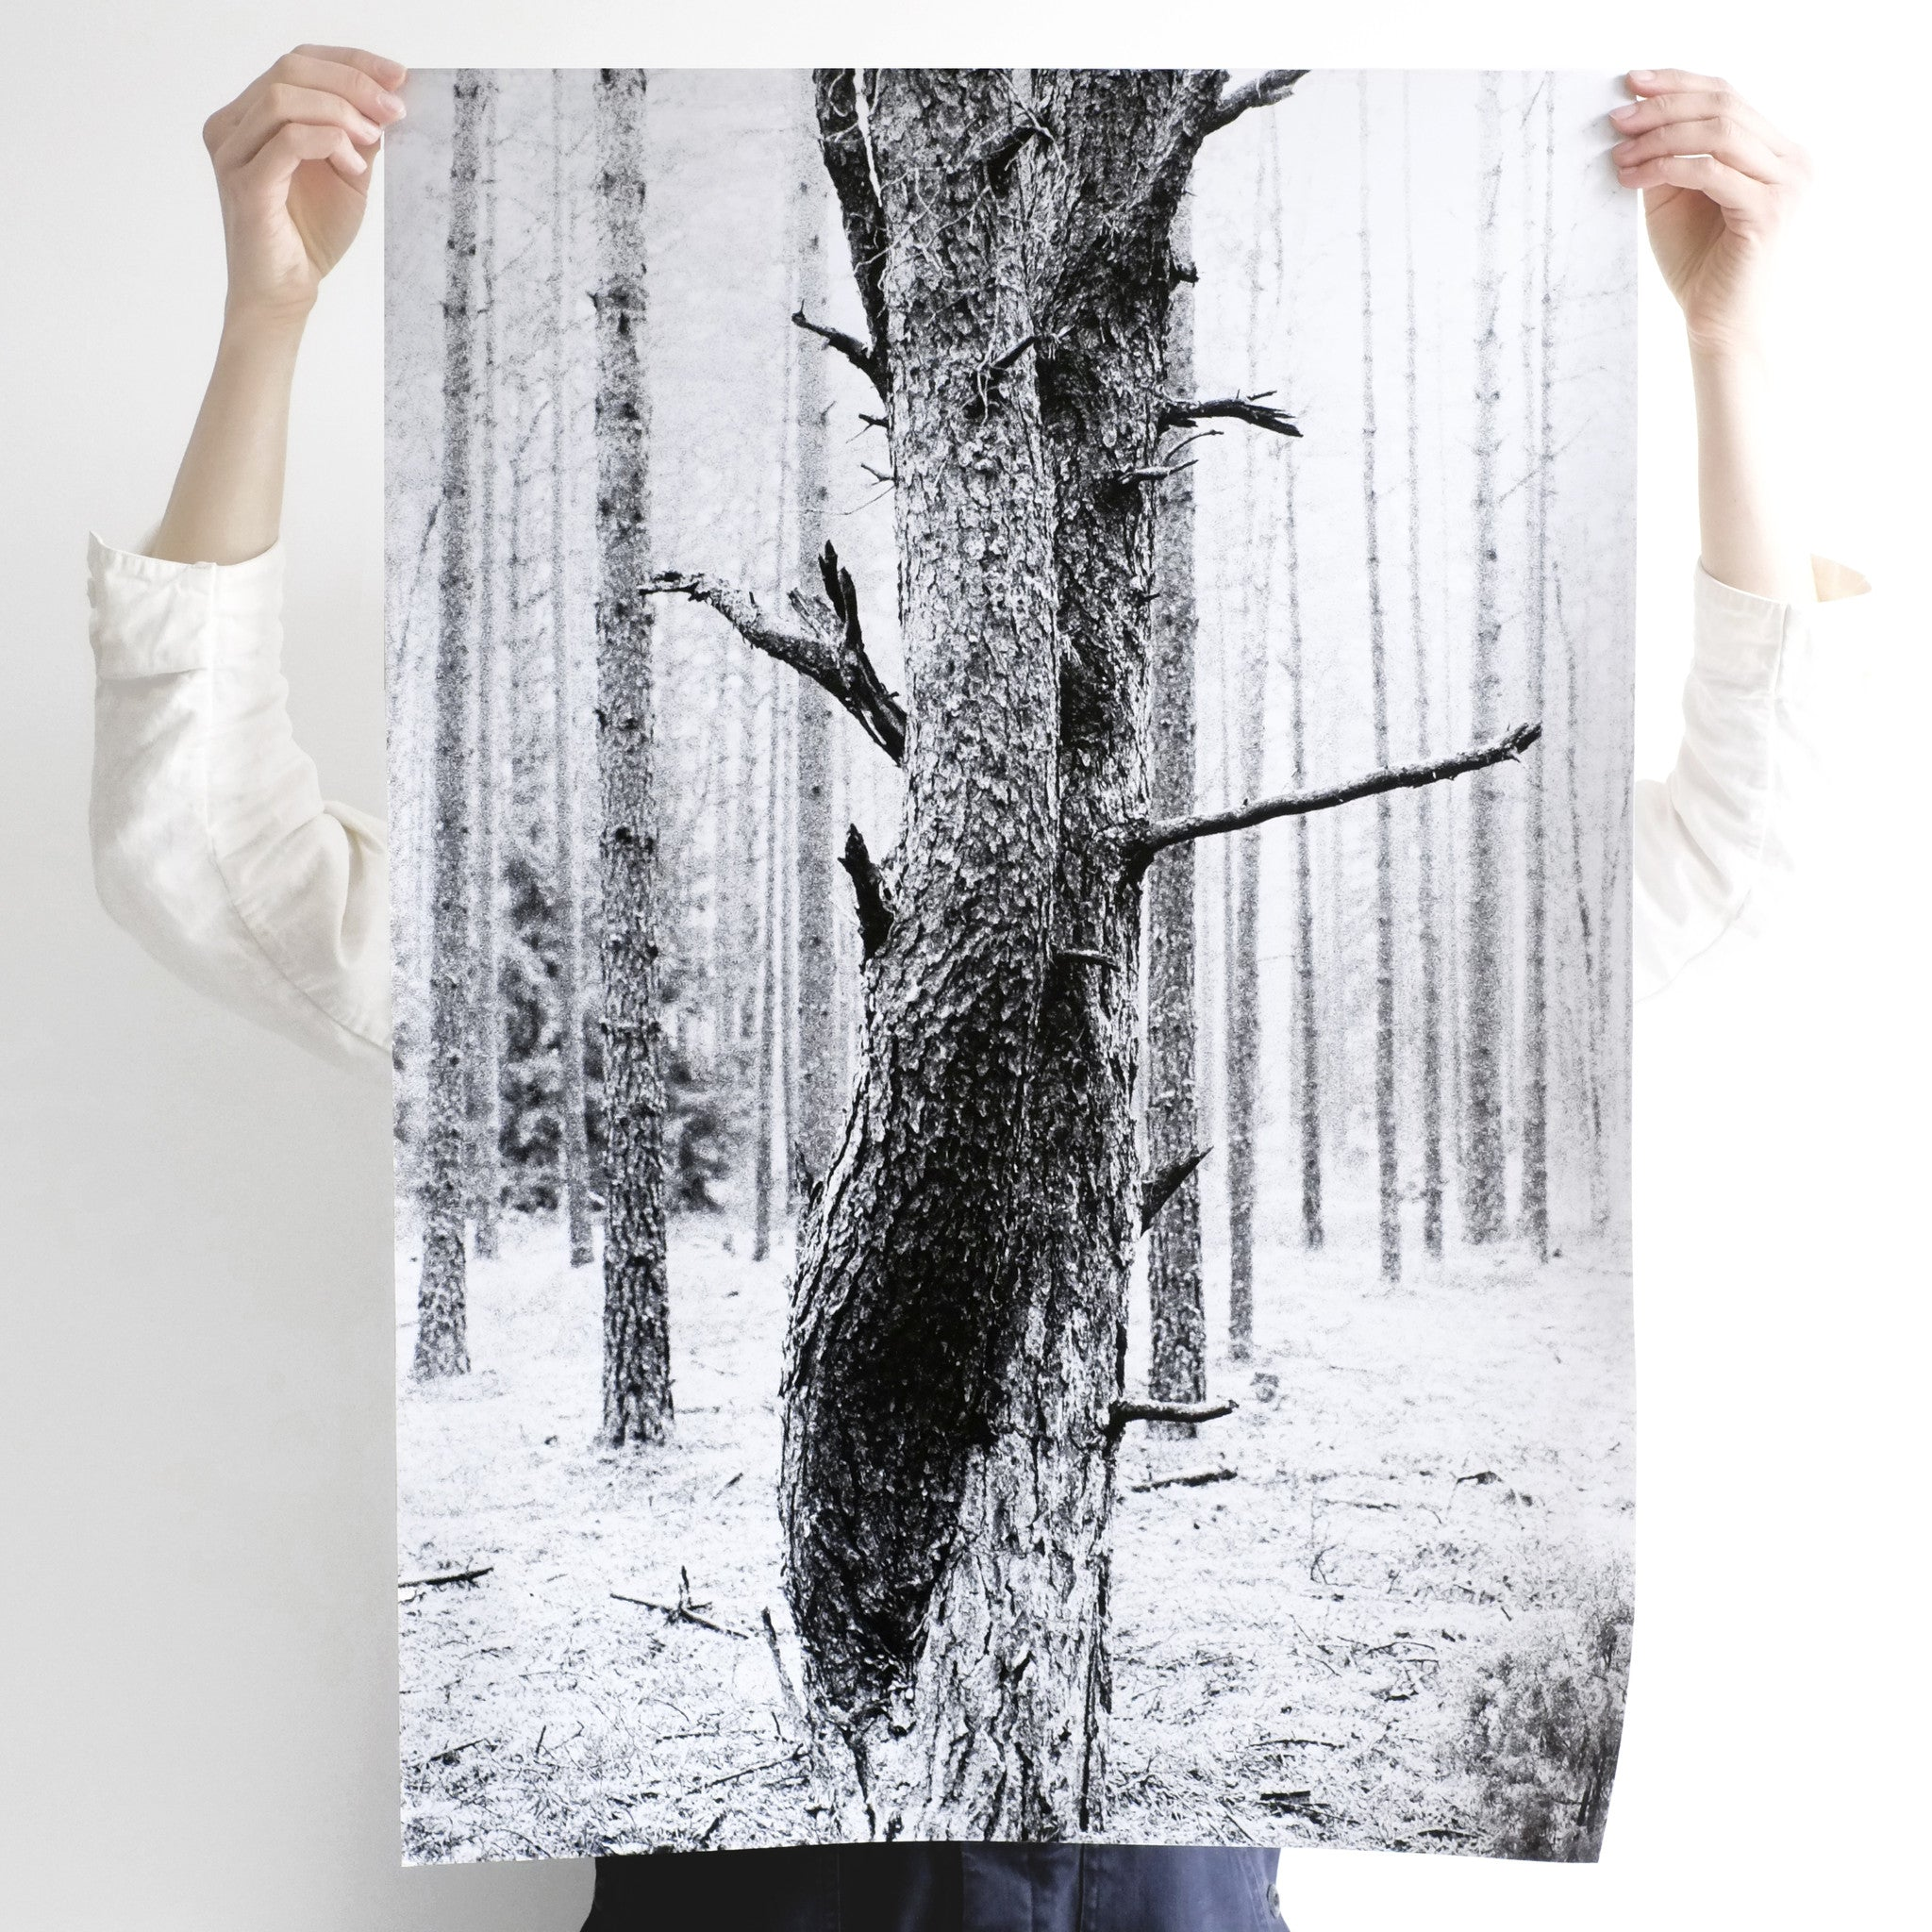 agatha a. nitecka silver artist shop loved up trees poster size L - A. - paper + salt - 2